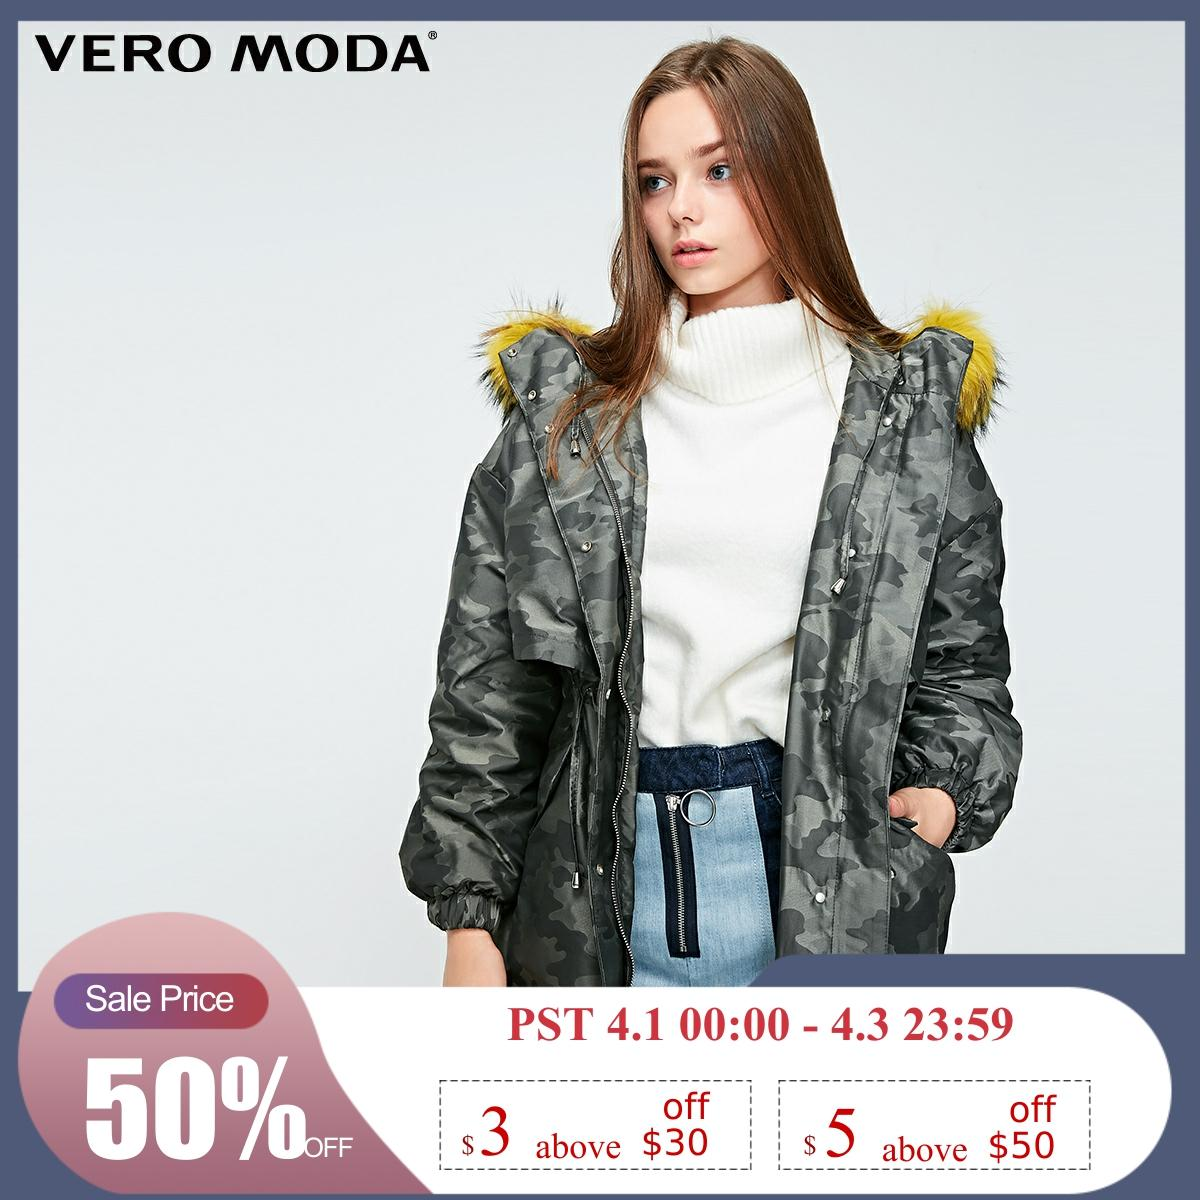 Vero Moda New 90% White Duck Down Raccoon Fur Hooded Camouflage Down Parka Coat | 318412535